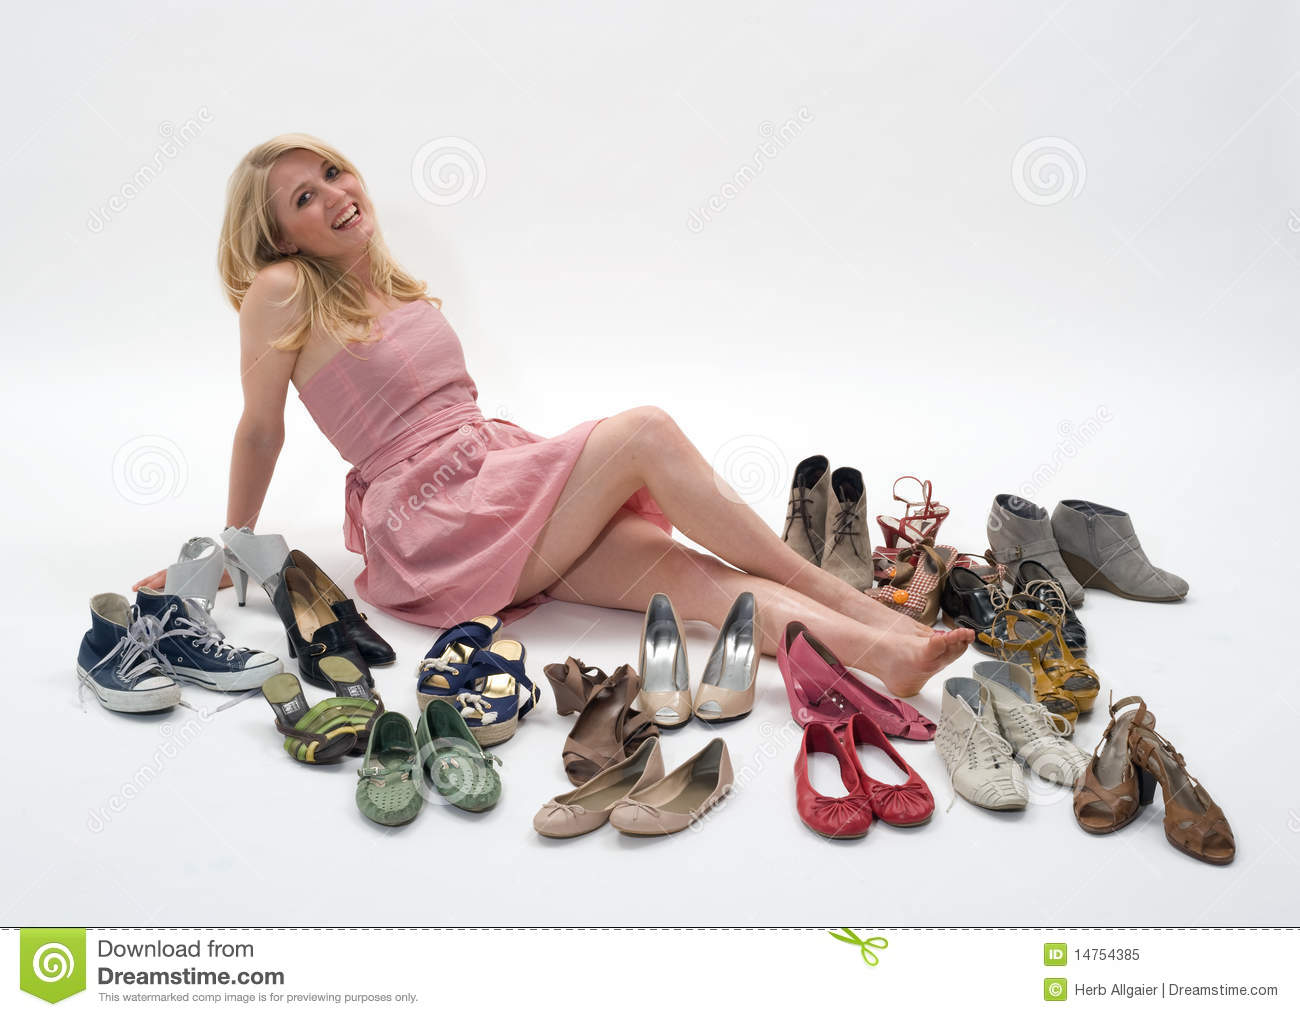 Women And Shoes Royalty Free Stock Photo - Image: 14754385